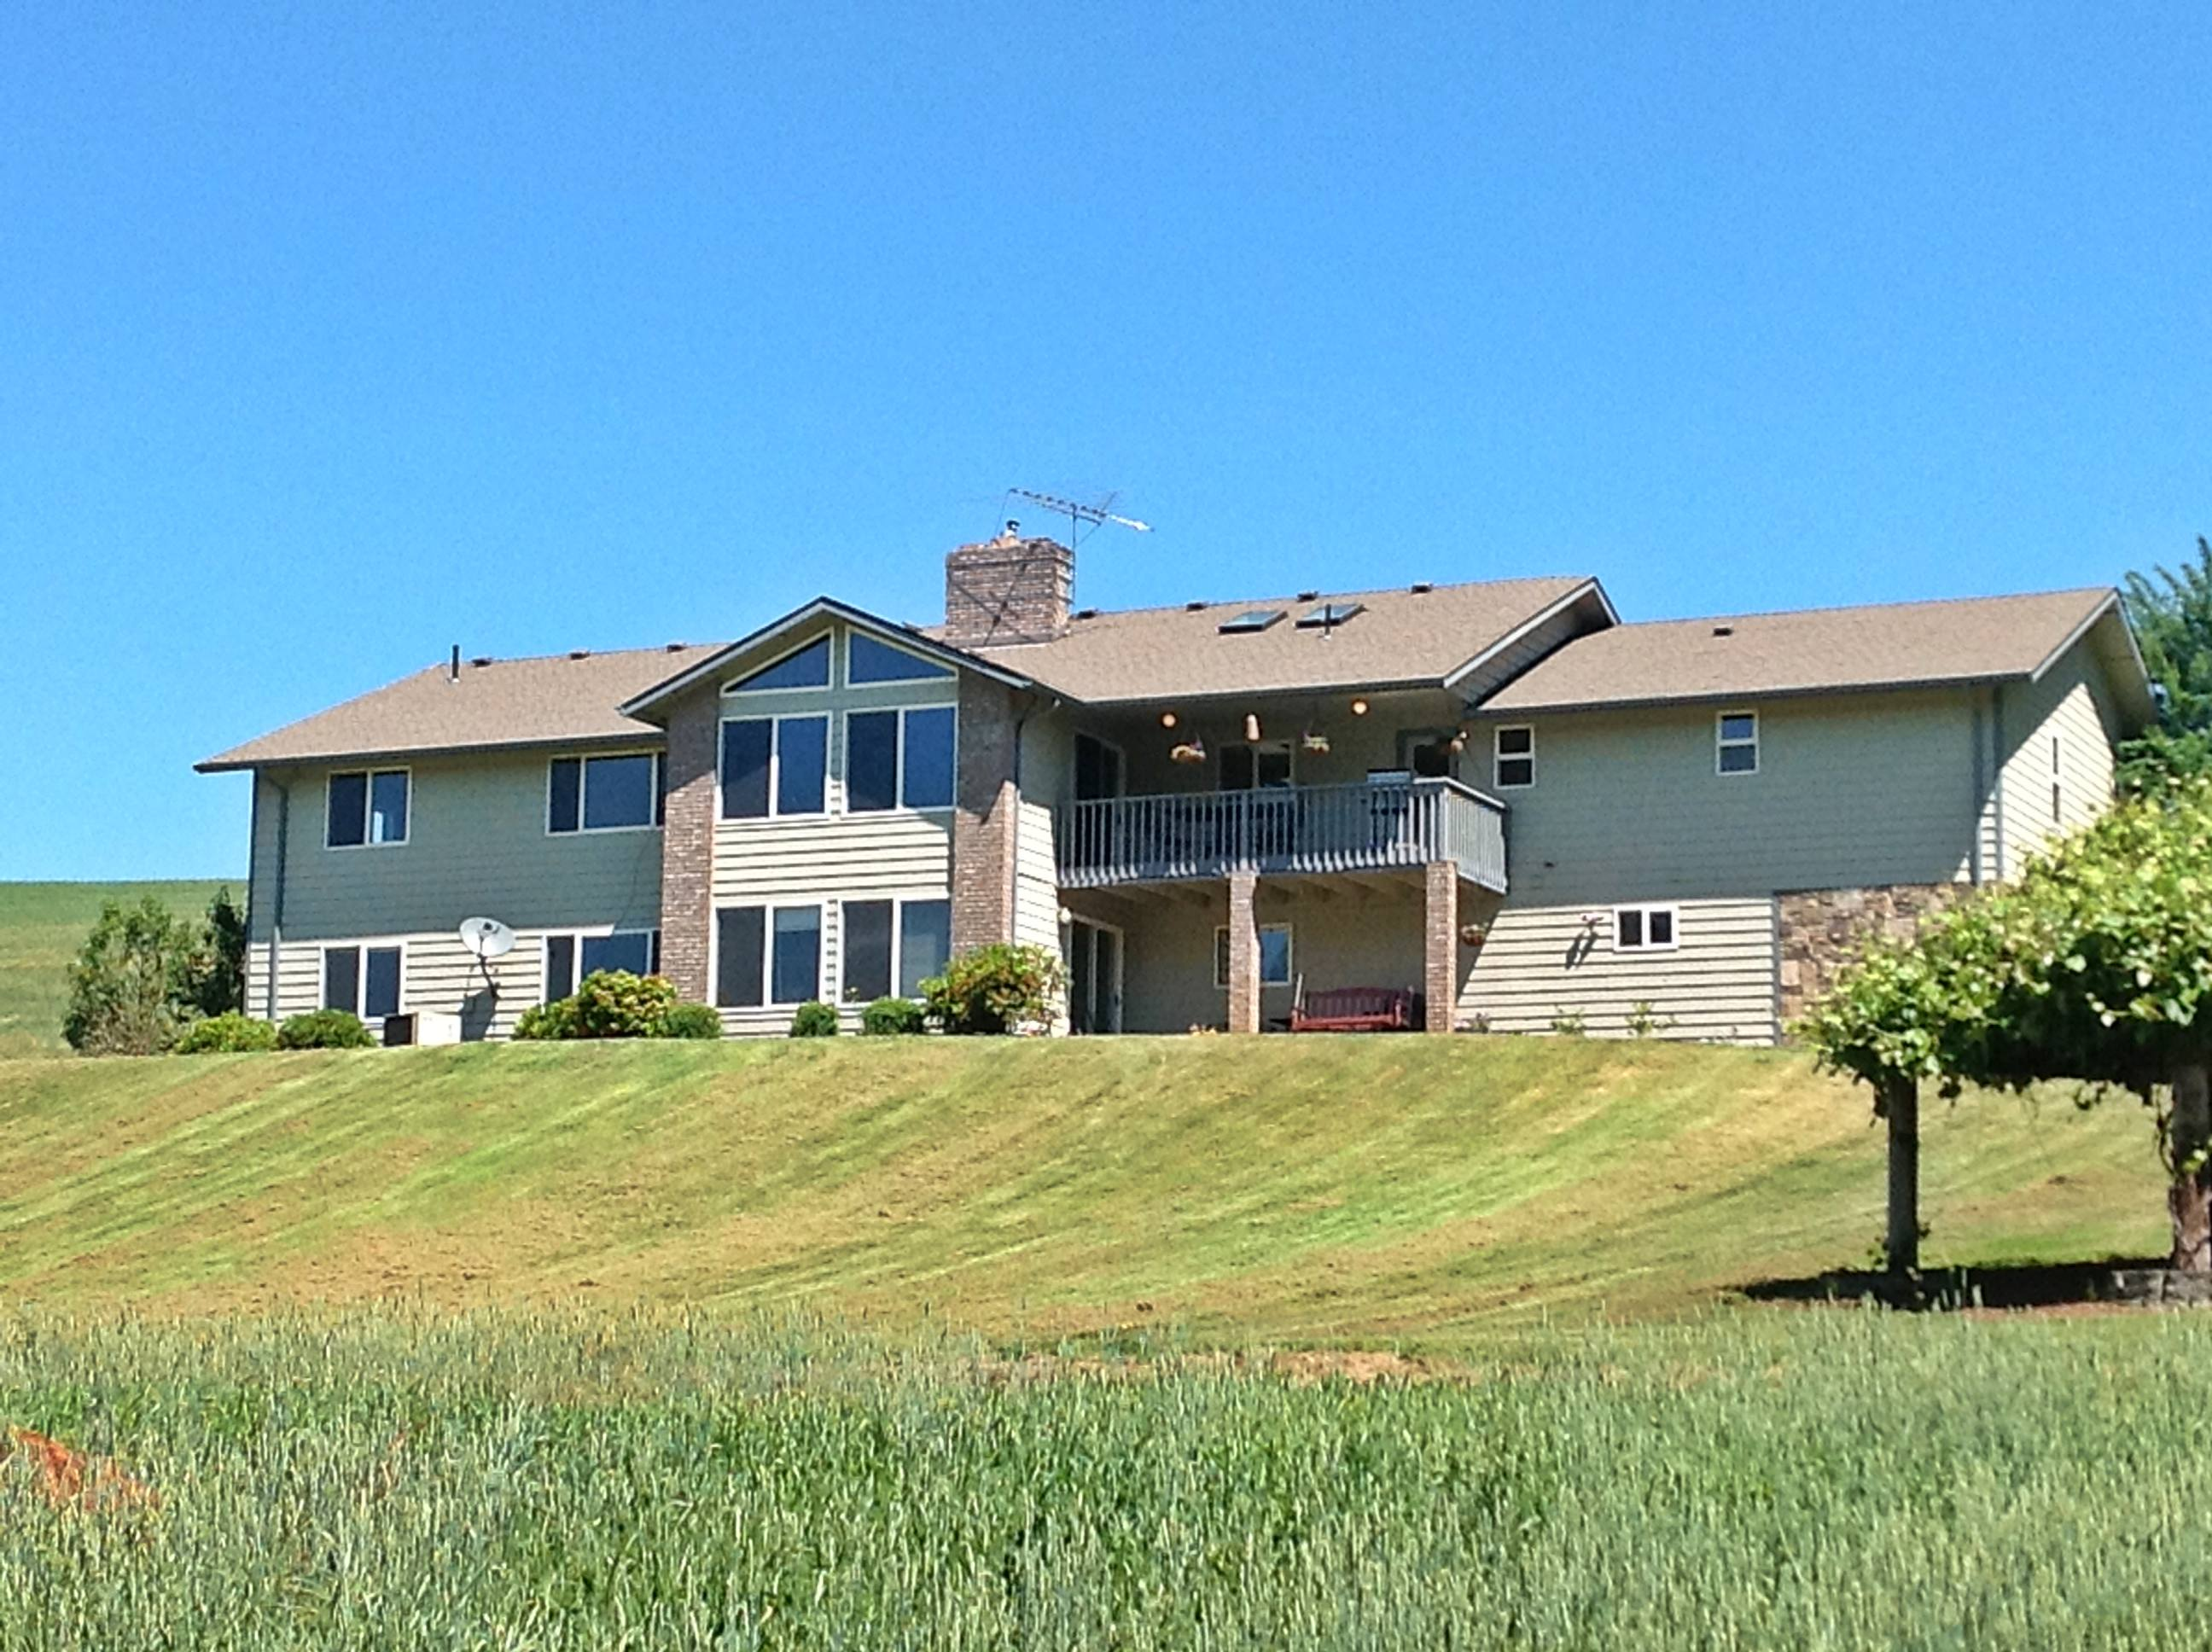 Dual Living In South Salem On 30 Acres Homes With Horse